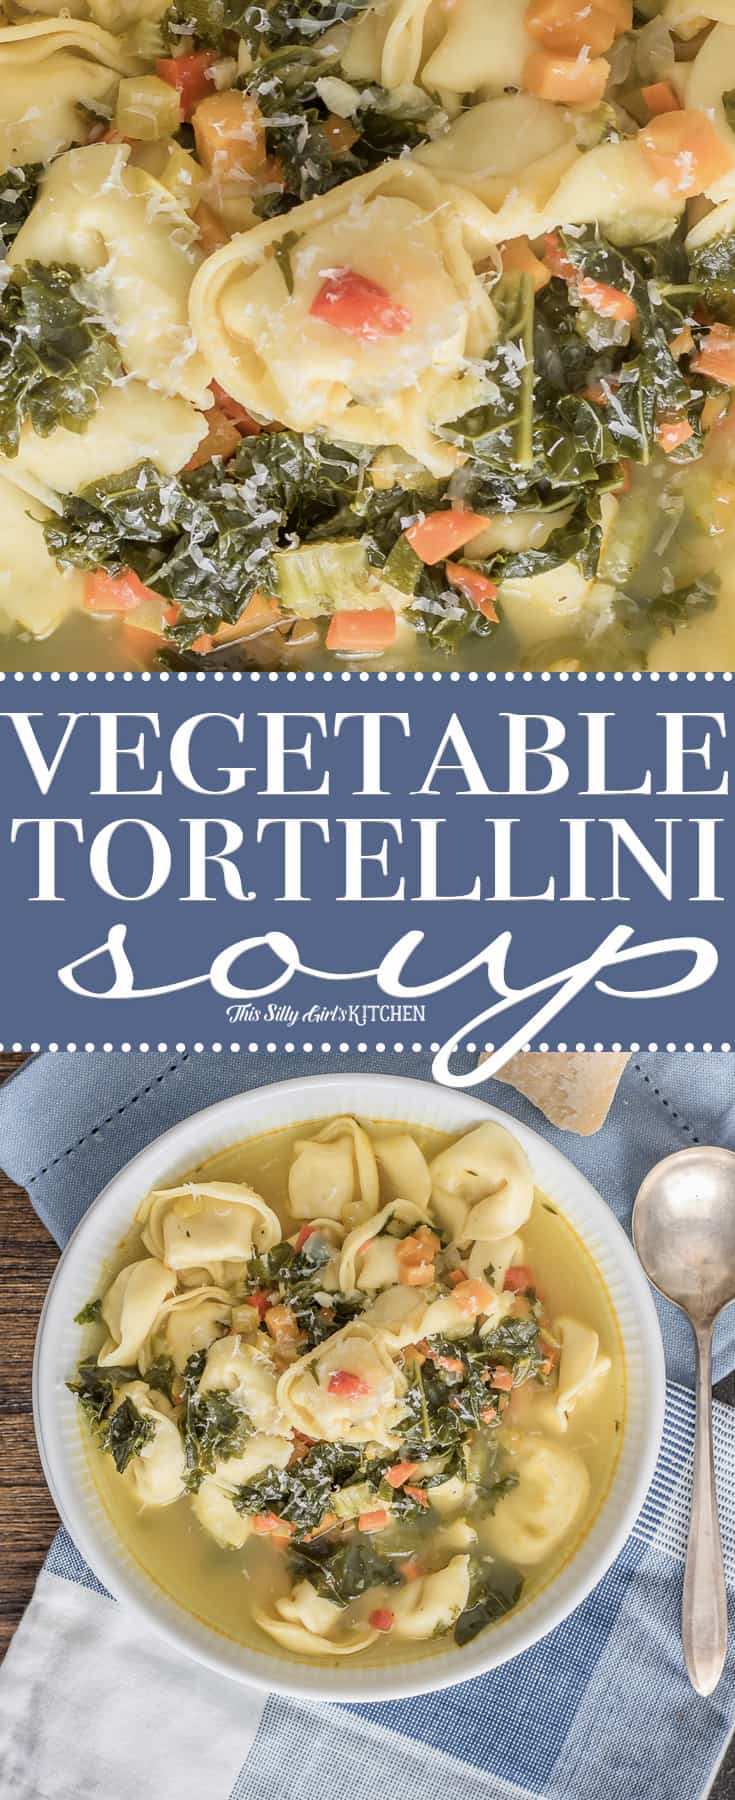 Photo collate of Vegetable Tortellini Soup with Title in middle